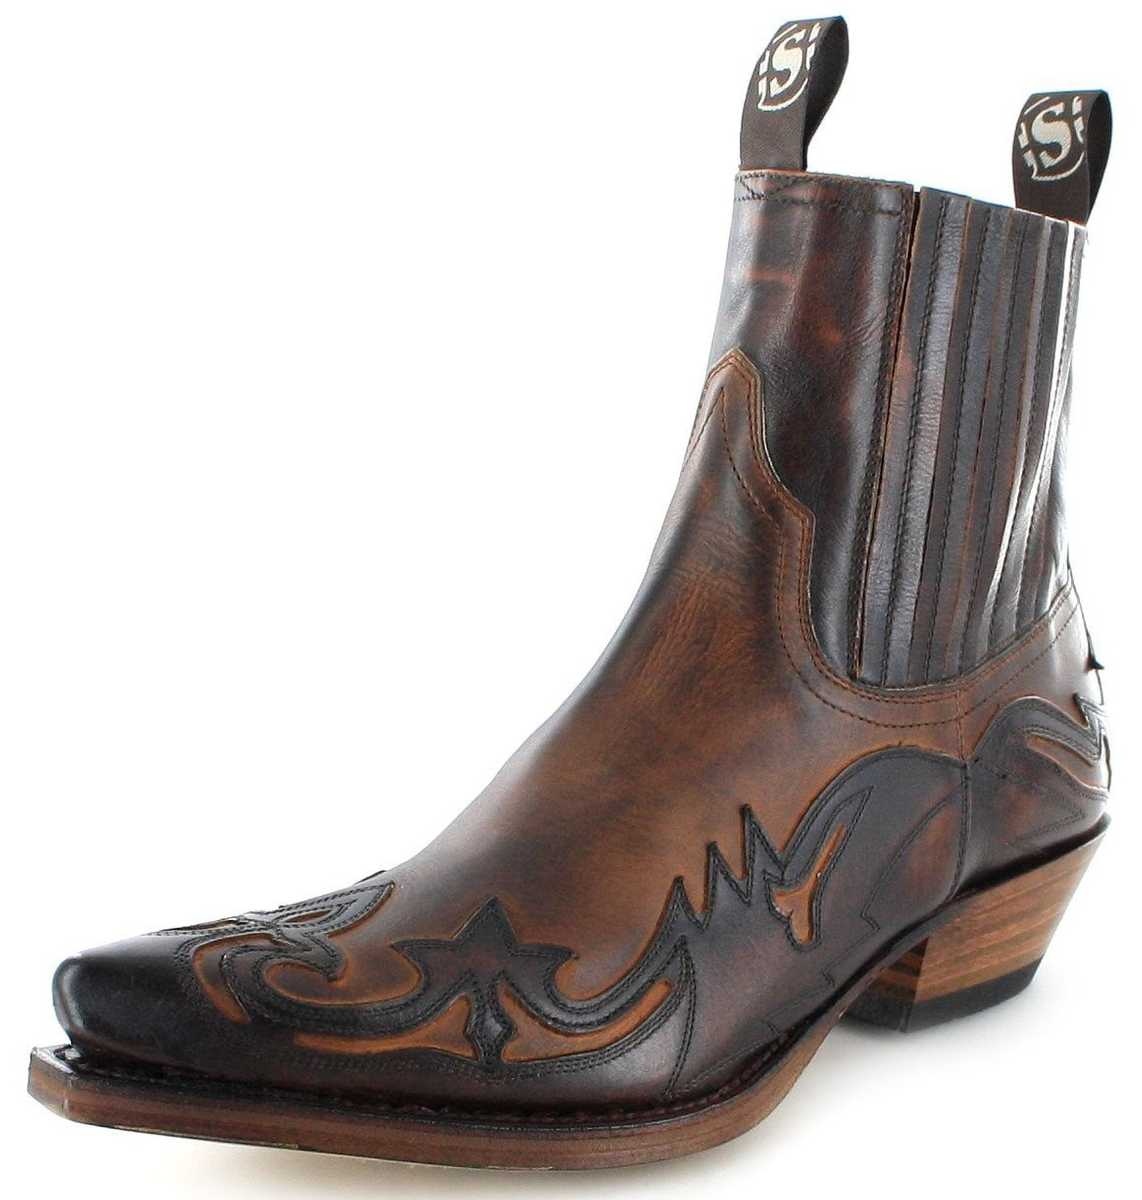 Sendra Boots 4660 Marron Western Ankle Boot - Brown